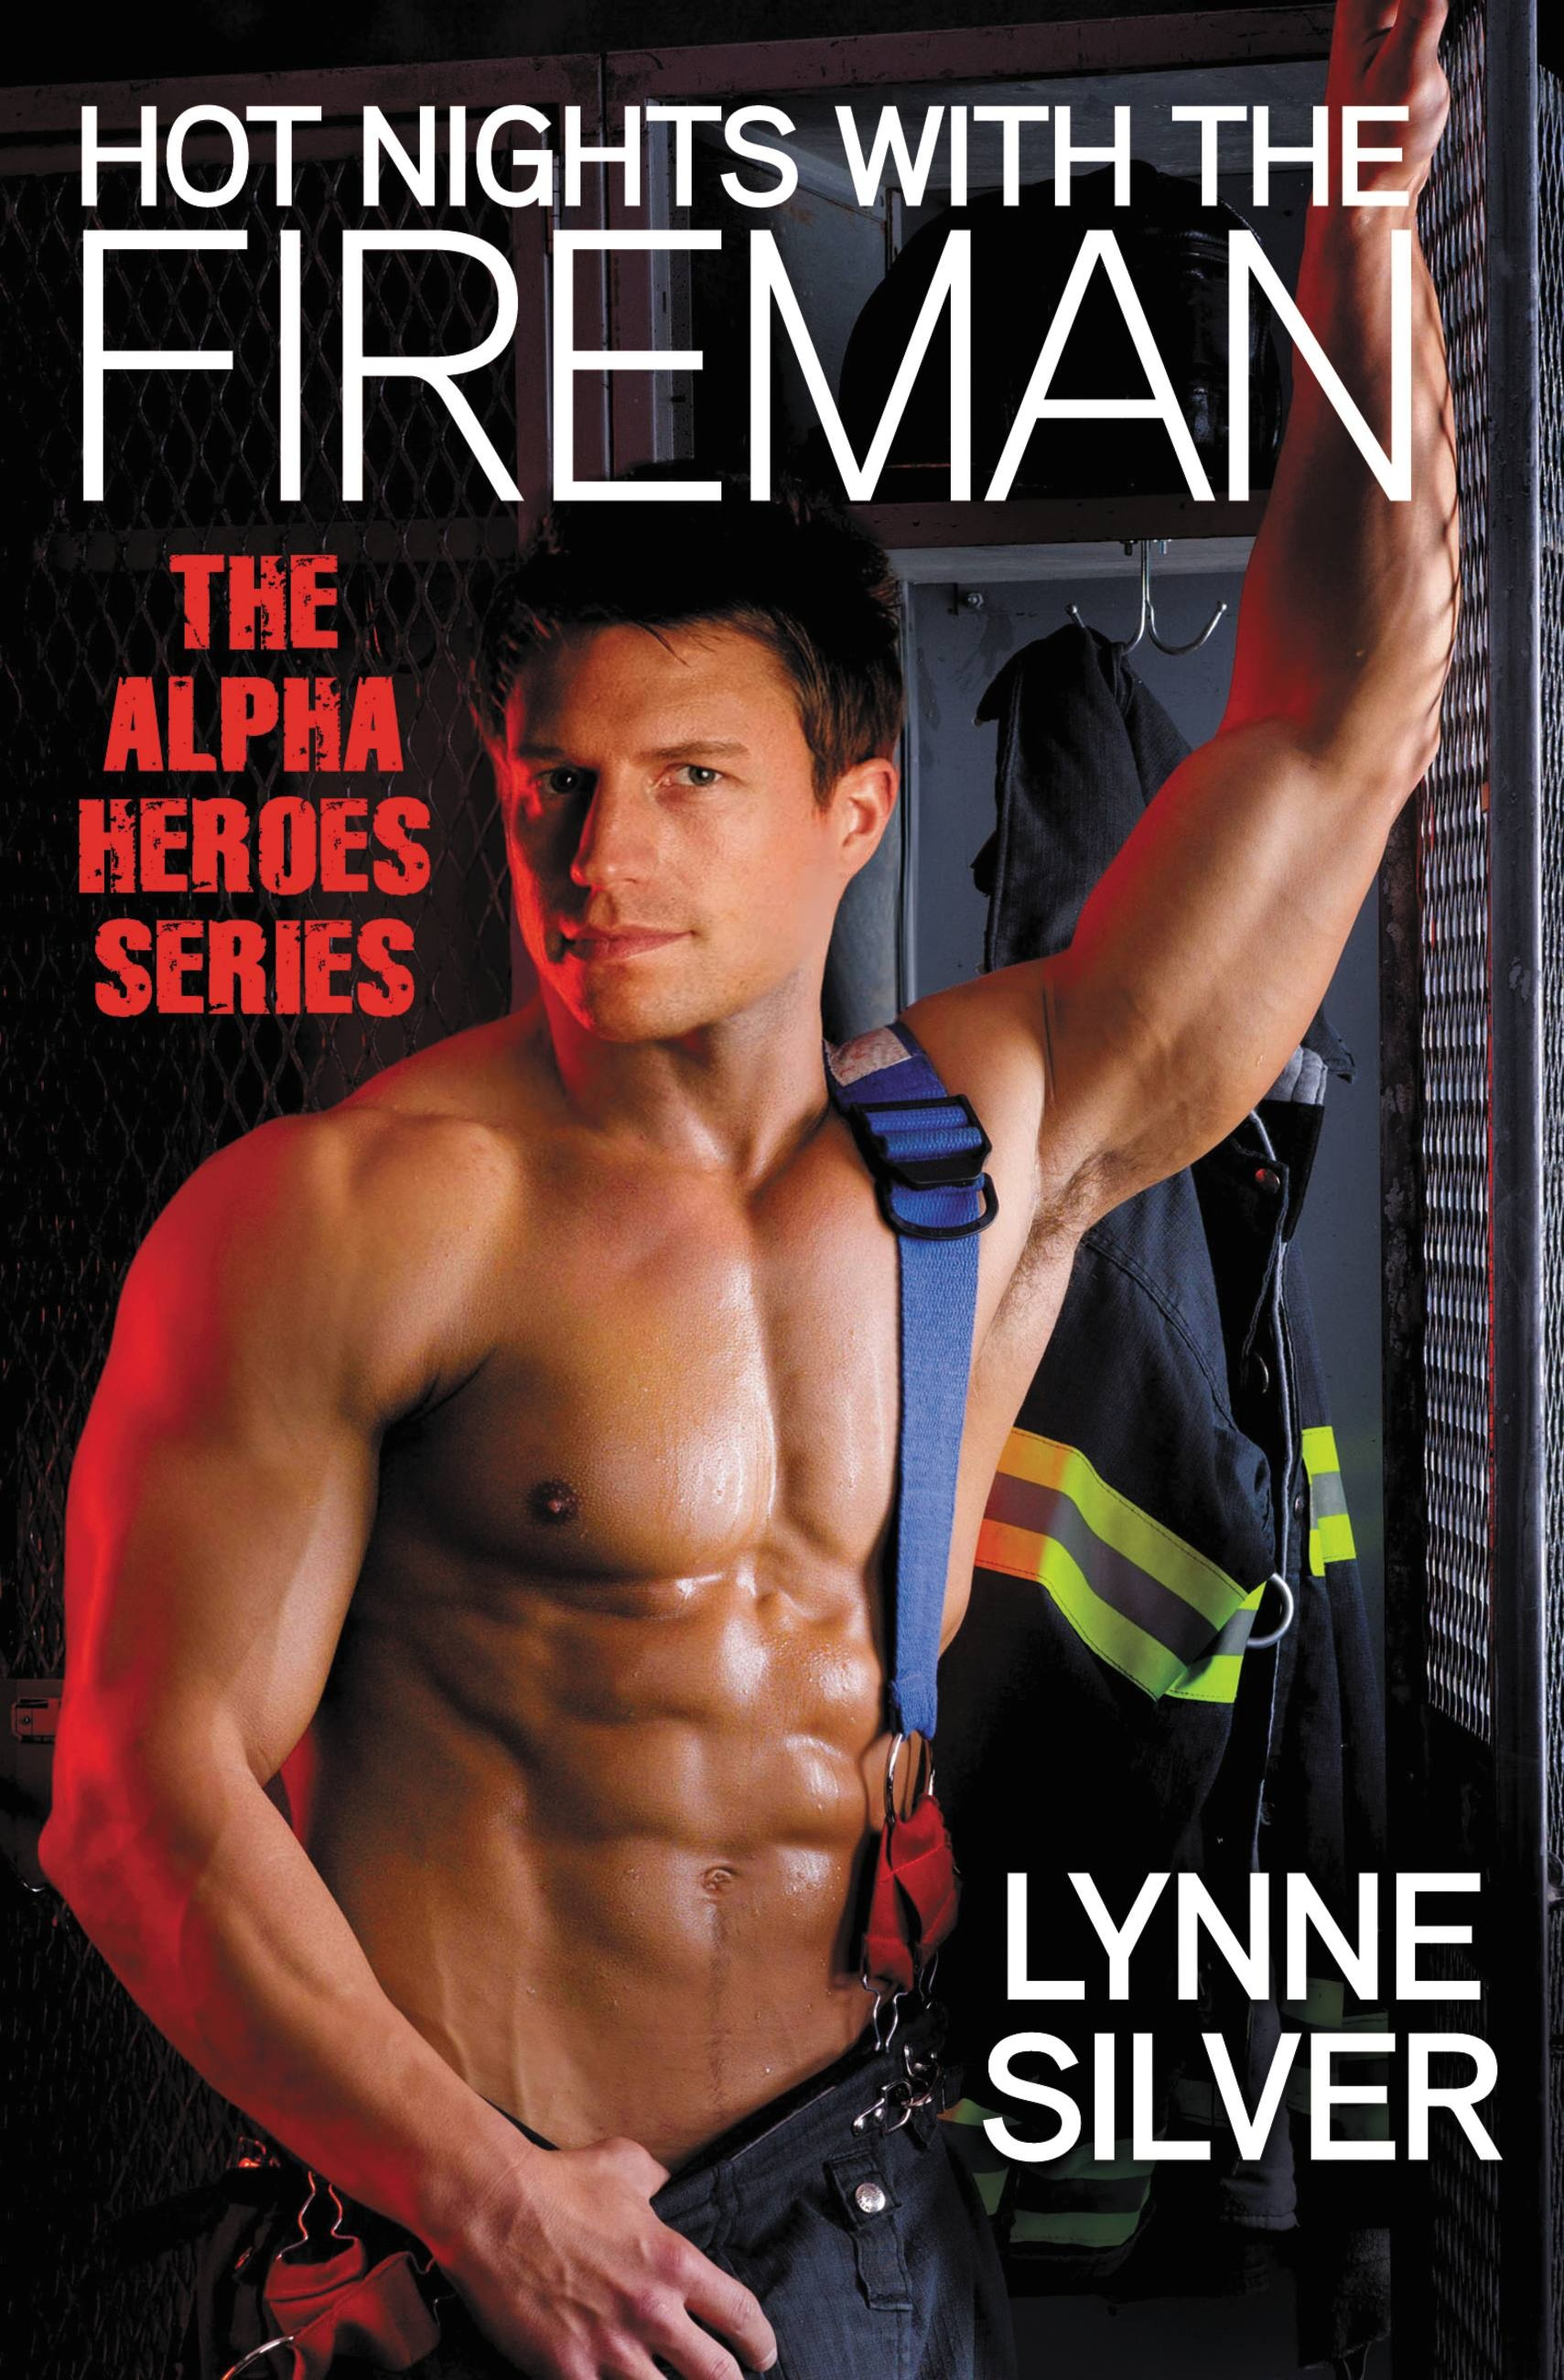 Pictures of sexy firemen